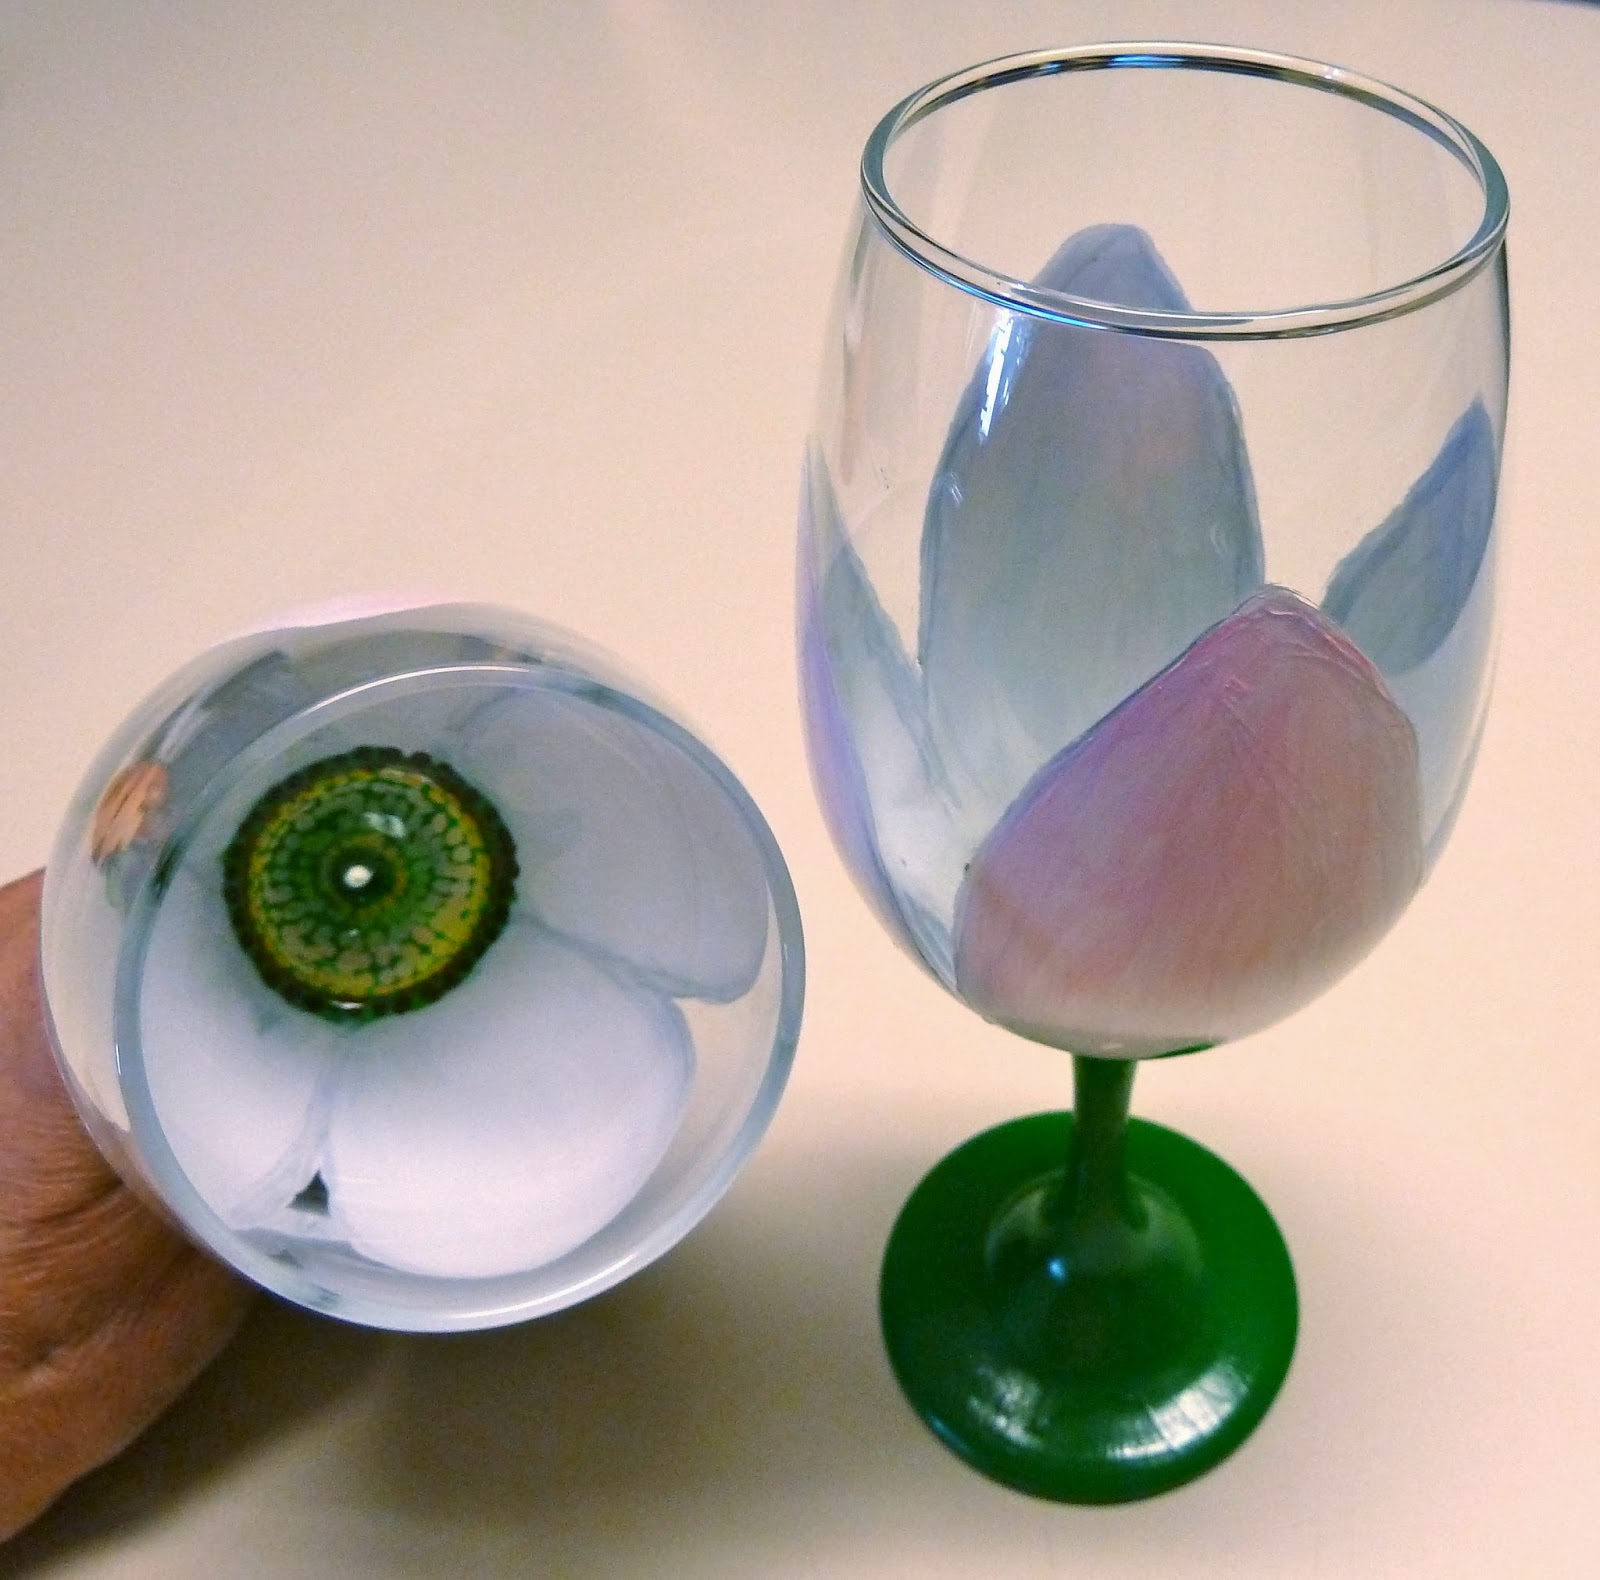 Make it easy crafts floral painted wine glass tutorial for What paint do you use to paint wine glasses